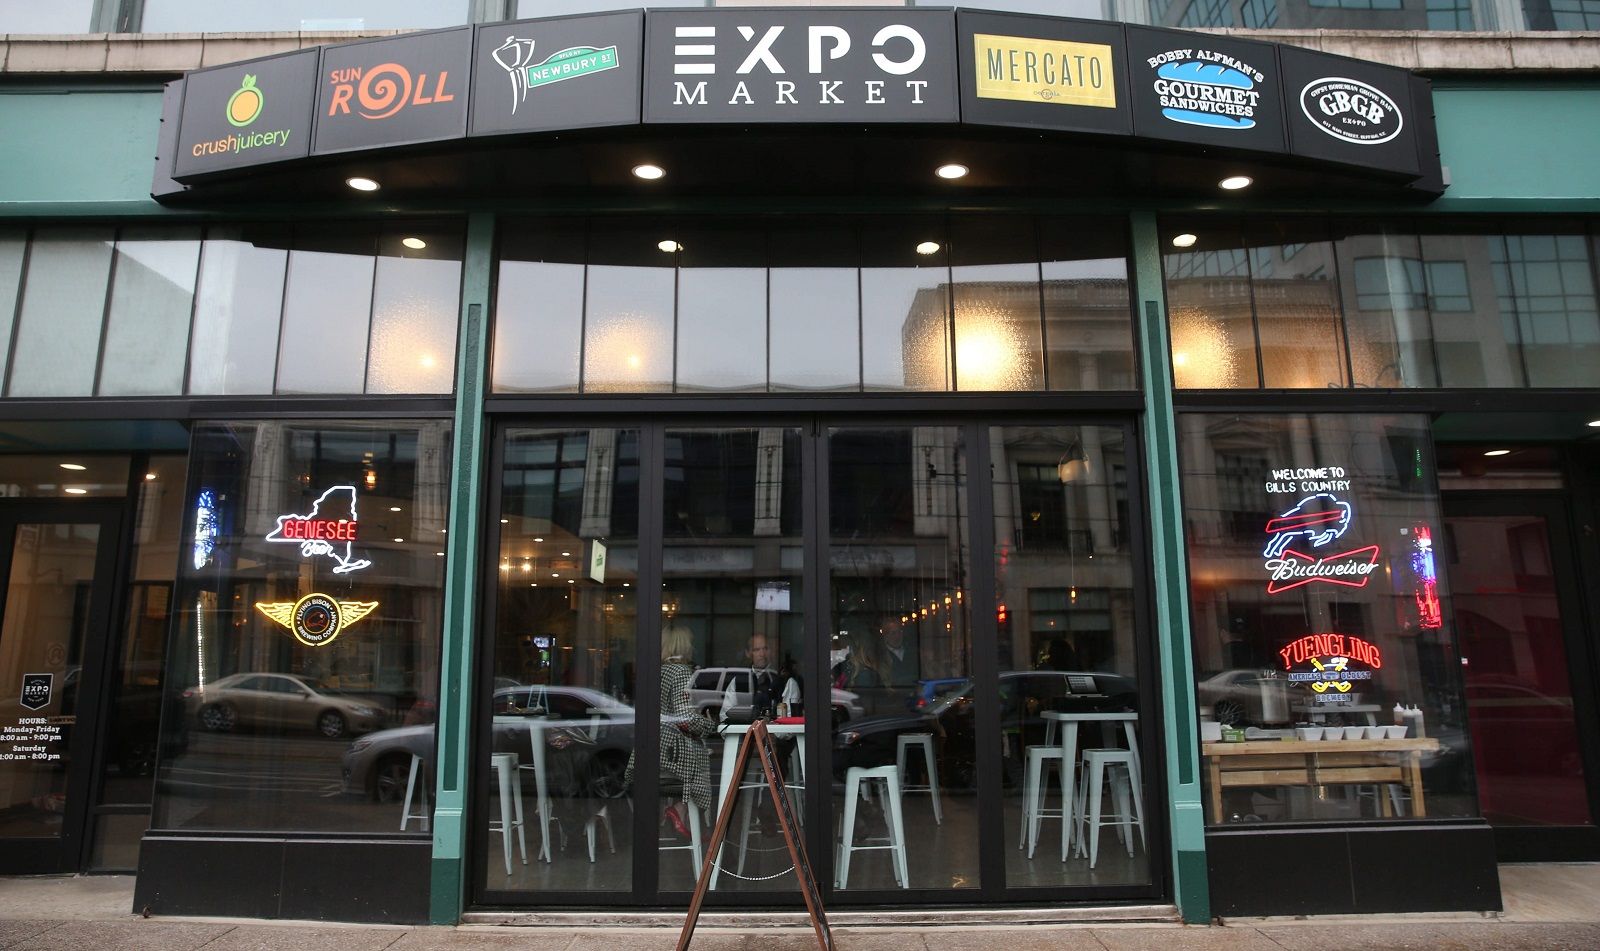 The exterior of EXPO Market, a collection of food and drink vendors inside the old Market Arcade. (Sharon Cantillon/Buffalo News)